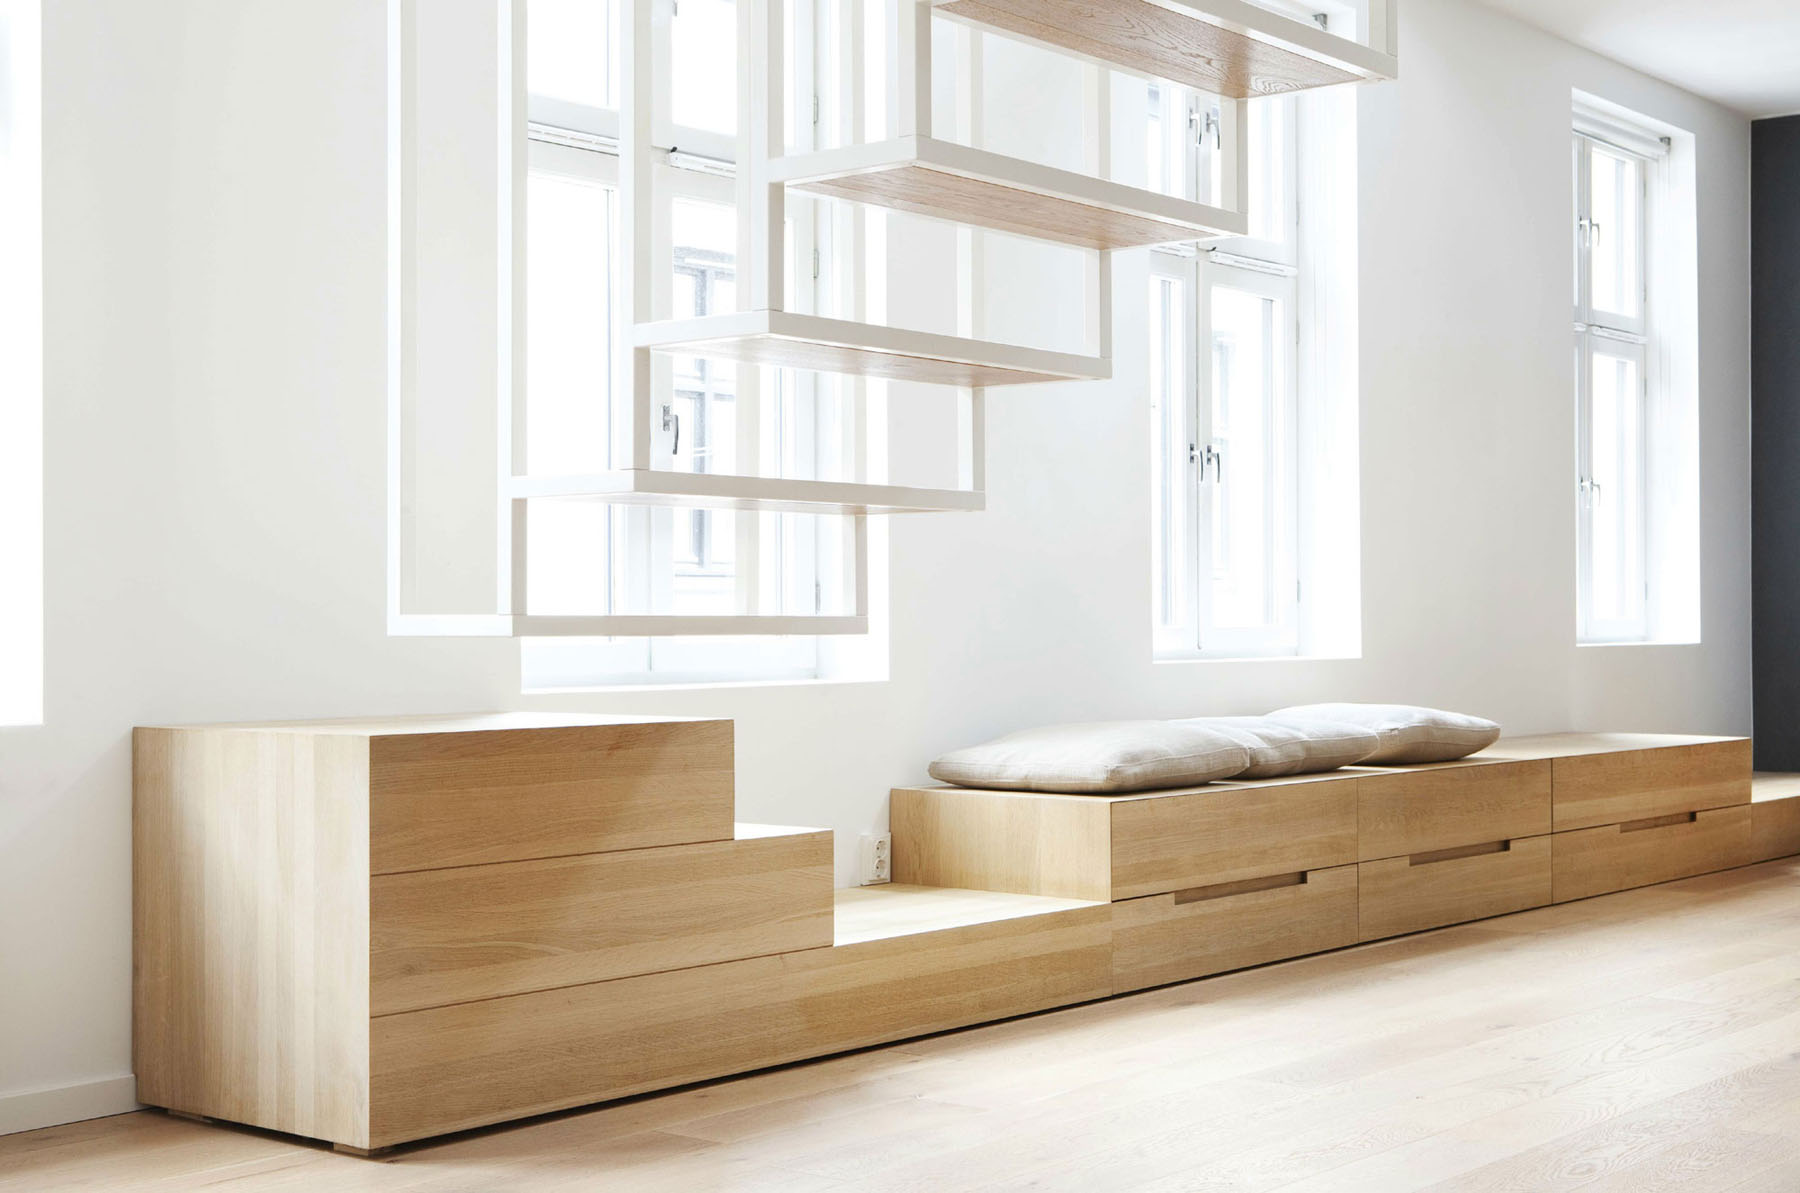 Wooden Storage Bench with Drawers